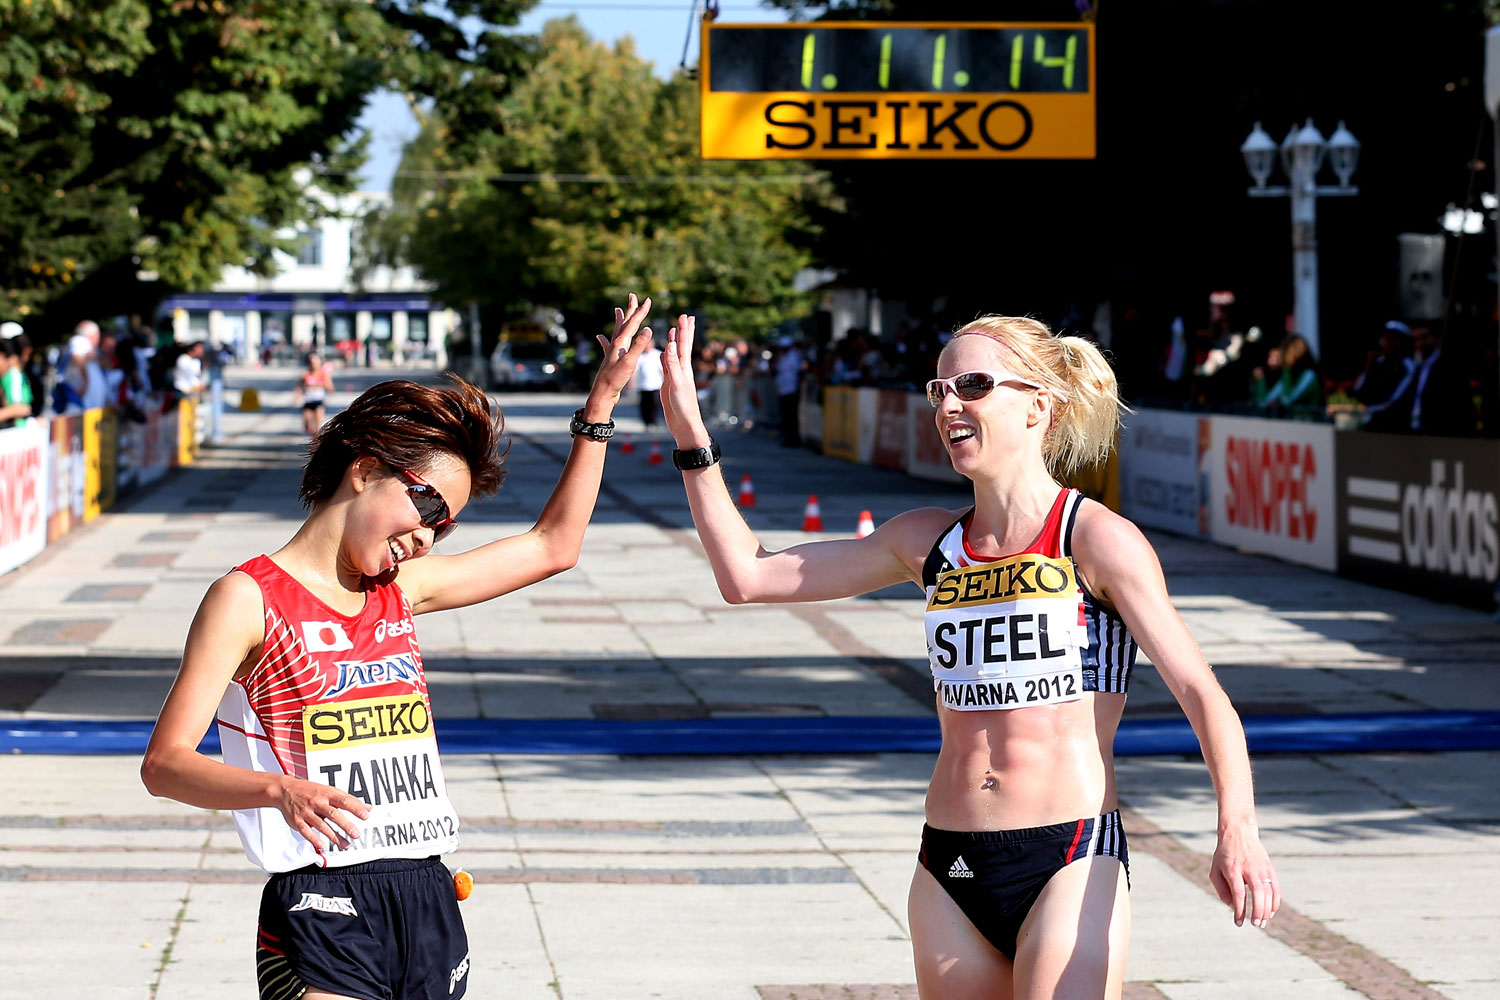 Gemma Steel of Great Britain crosses the finish line with Tomomi Tanaka of Japan during the 20th IAAF Women's World Half Marathon in Kavarna, Bulgaria.